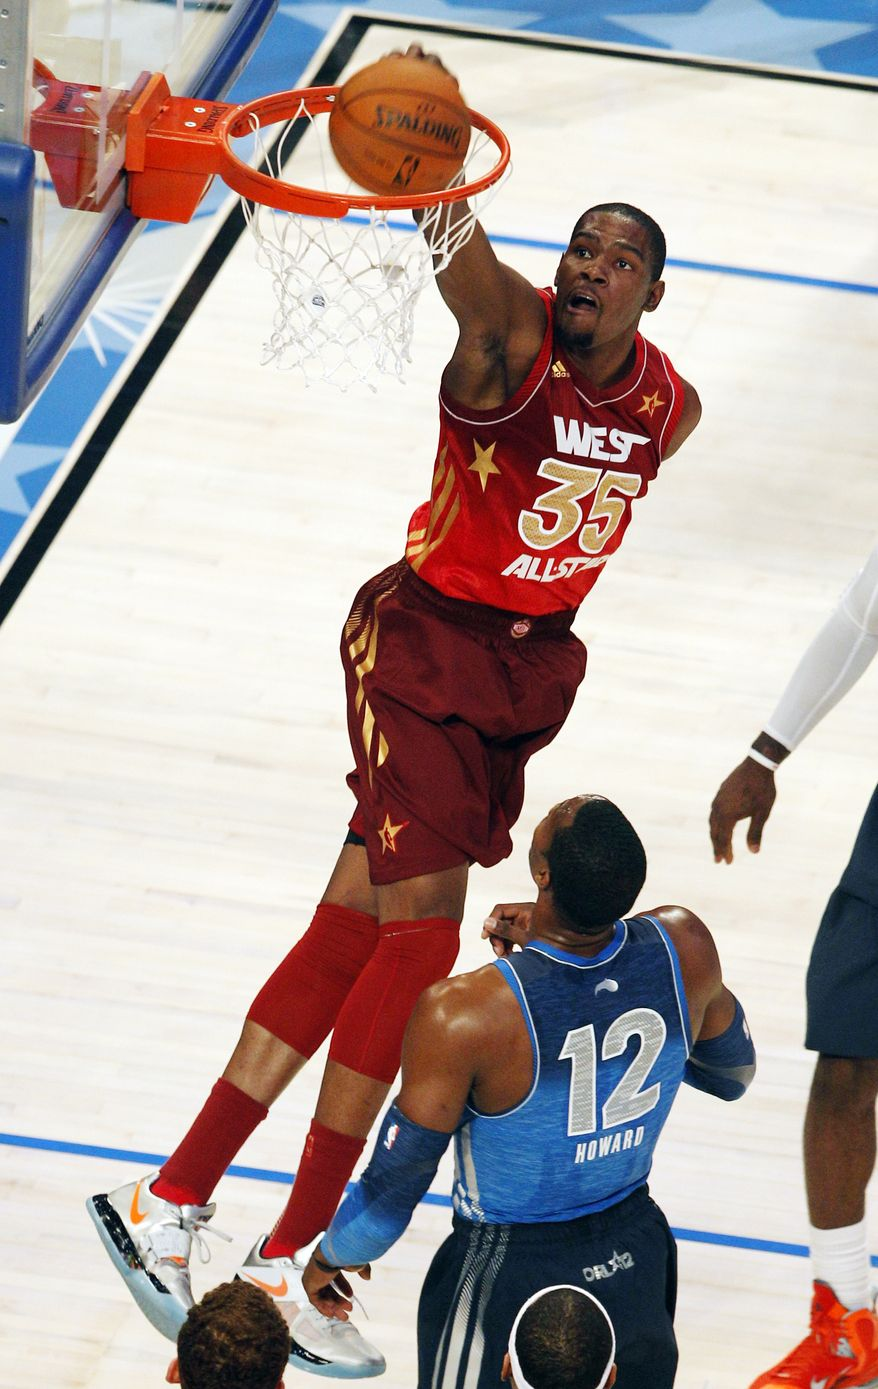 Western Conference's Kevin Durant (35), of the Oklahoma City Thunder, dunks over Eastern Conference's Dwight Howard (12), of the Orlando Magic, during the first half of the NBA All-Star Game, Sunday, Feb. 26, 2012, in Orlando, Fla. (AP Photo/Lynne Sladky)